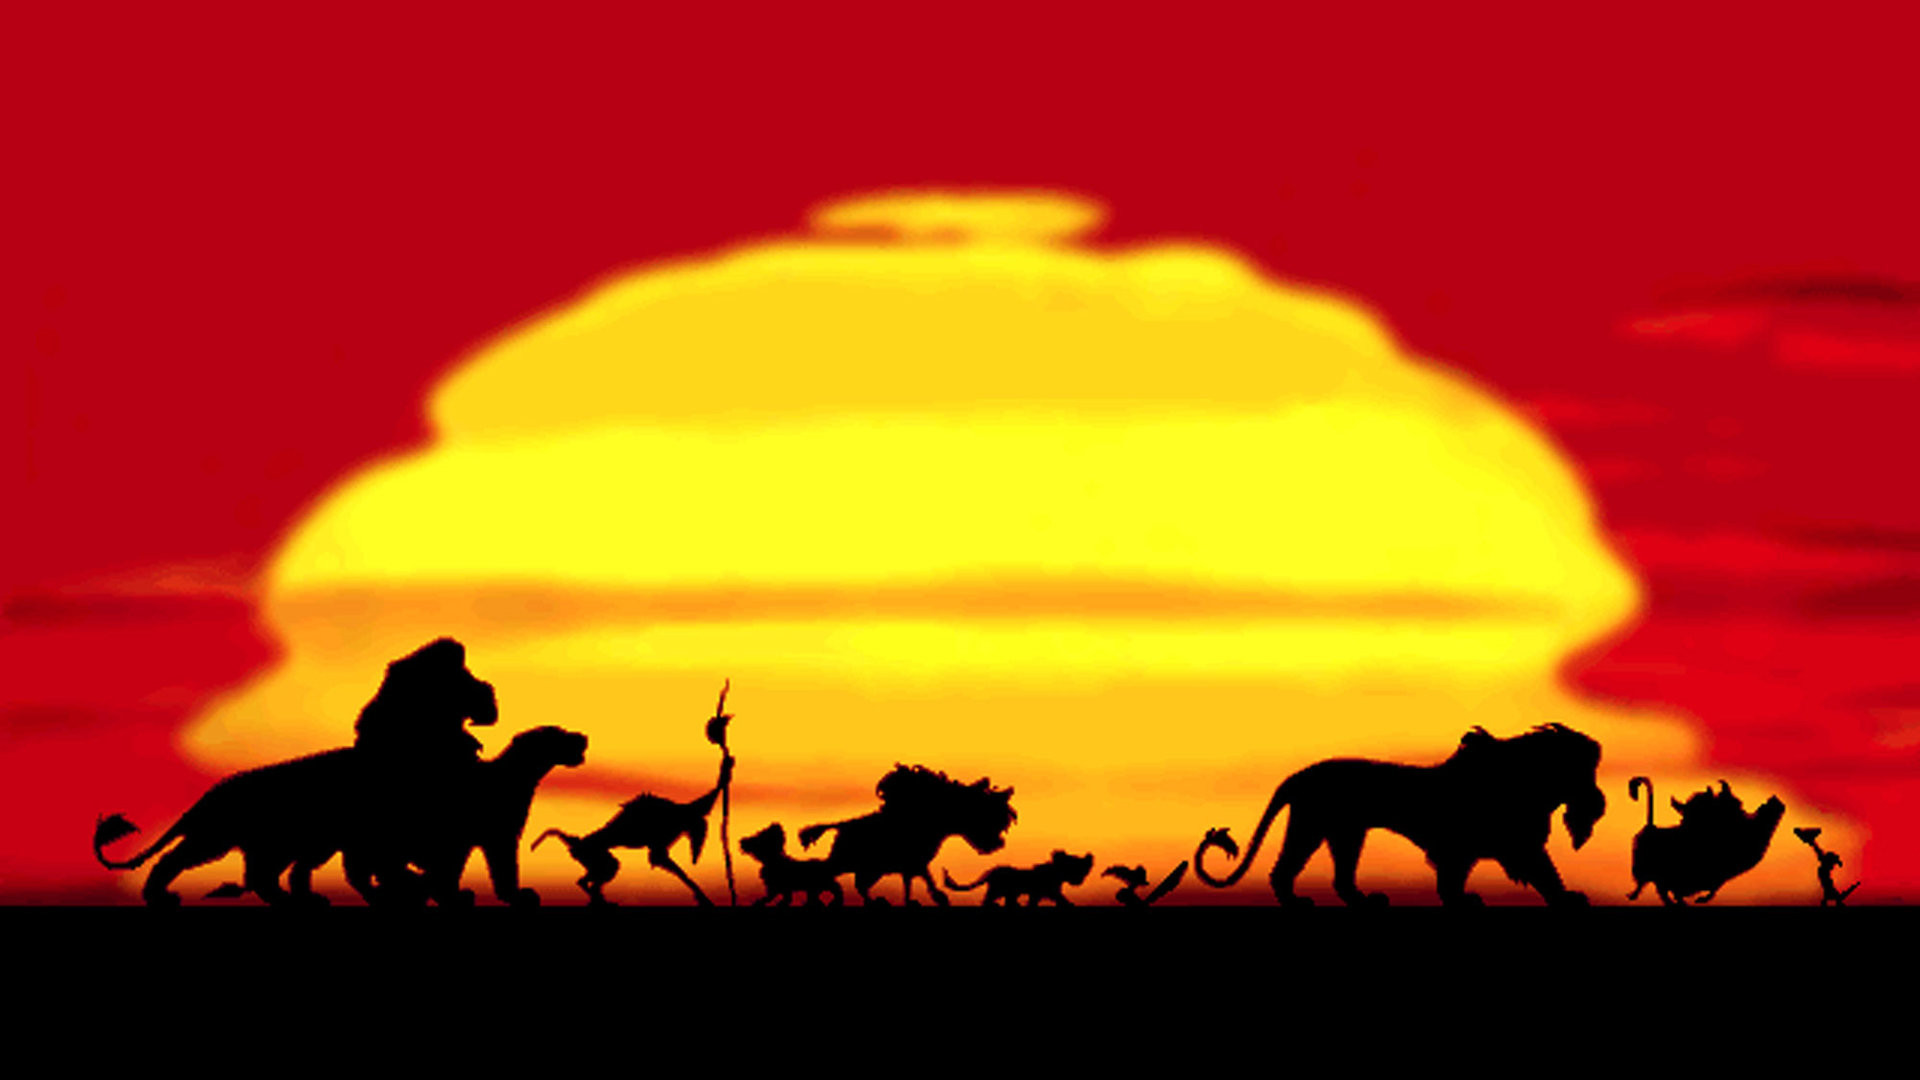 Majestic Lion King Wallpaper By Hd Wallpapers Daily 1920x1080